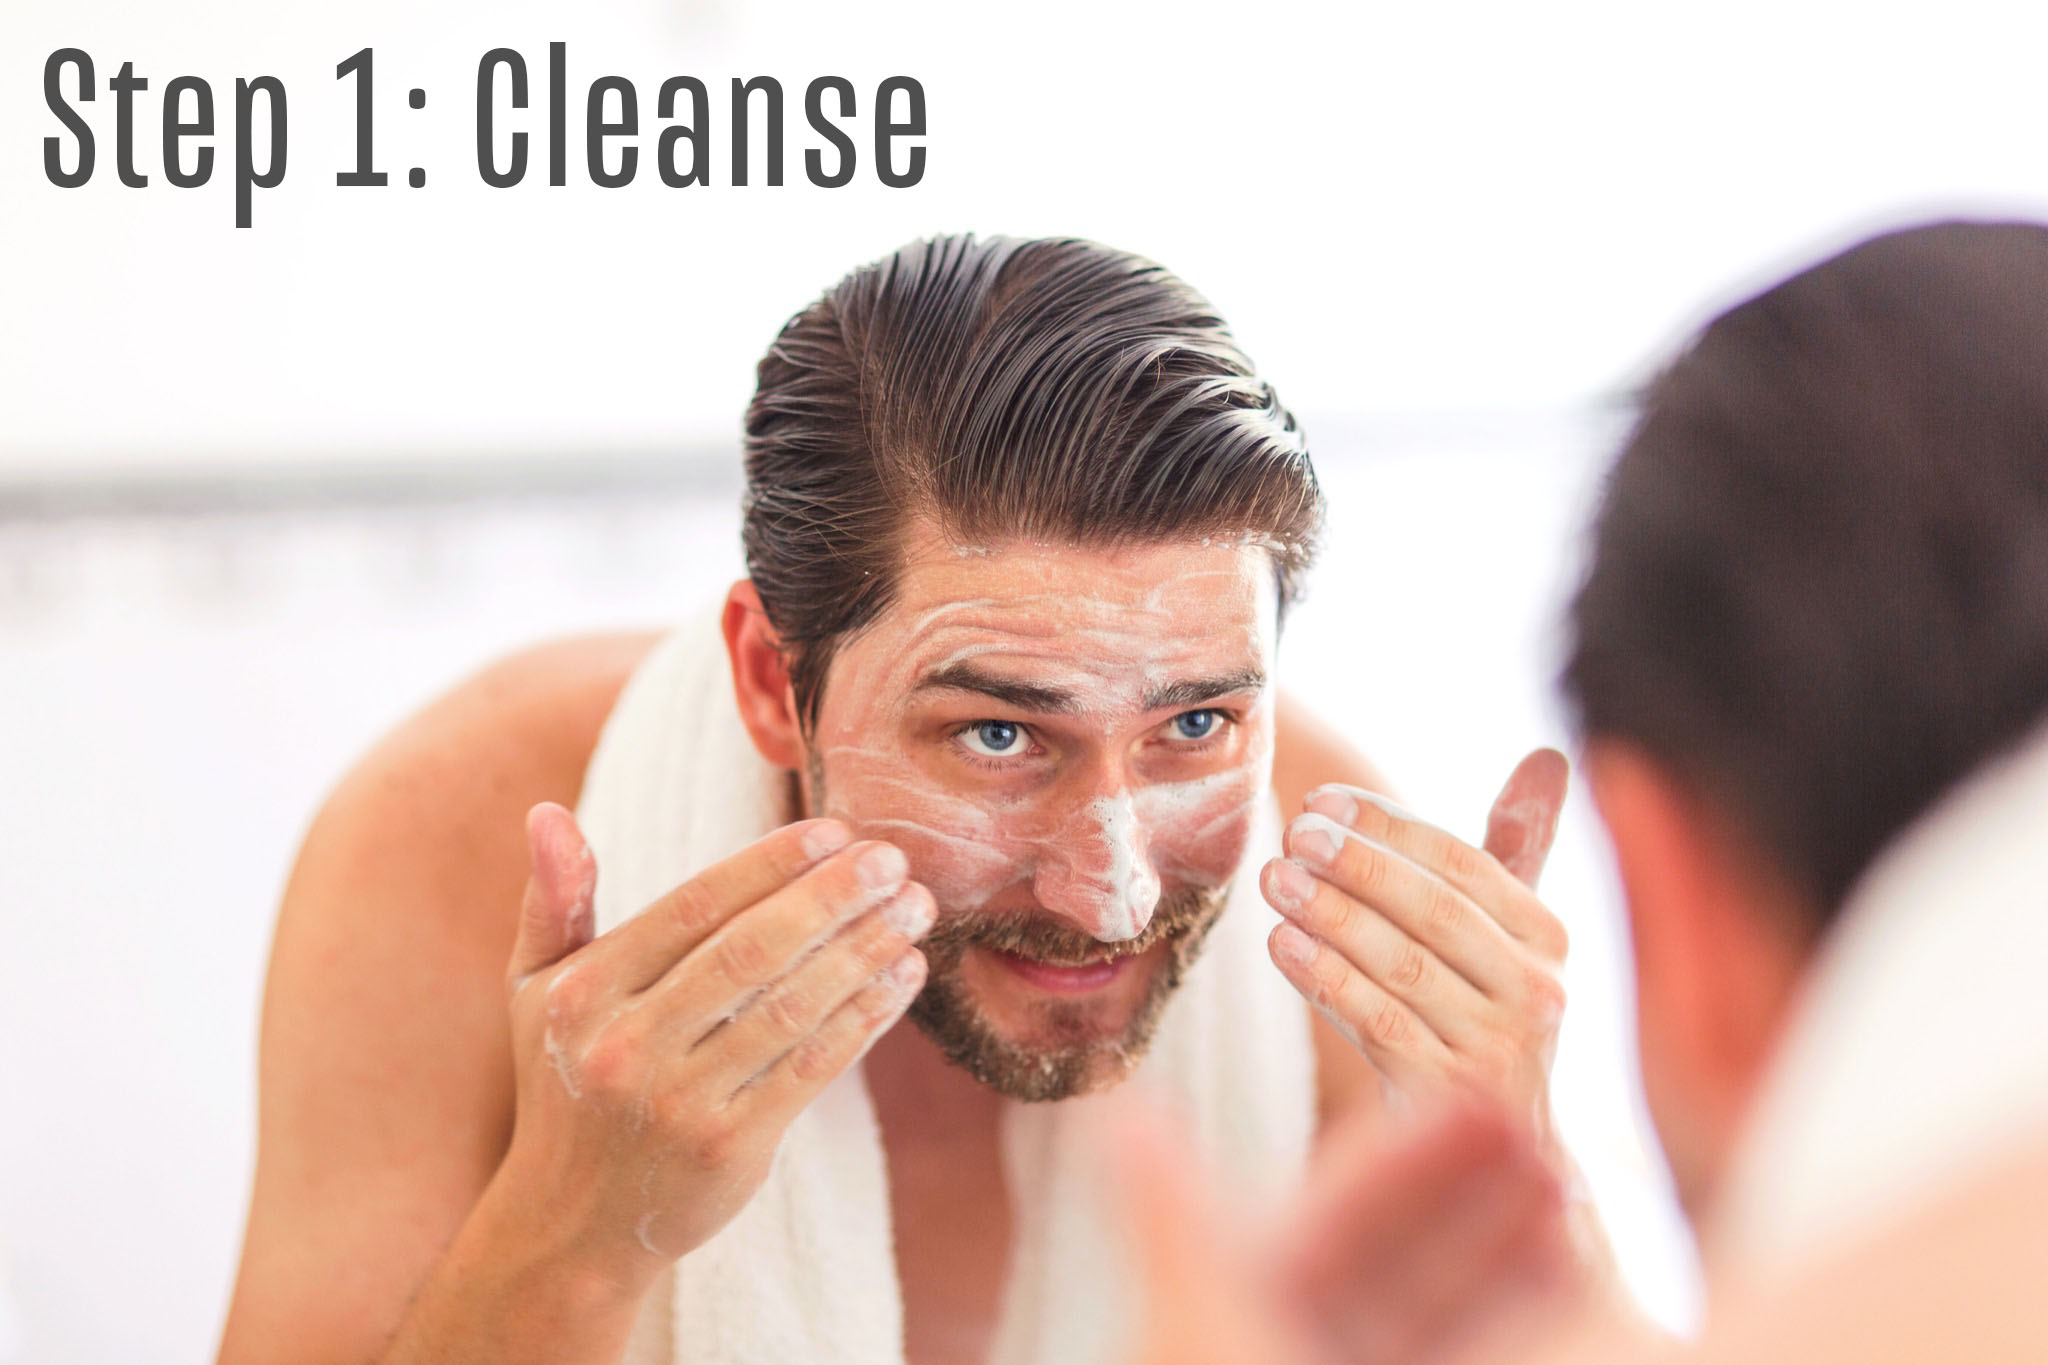 Step 1: Cleanse